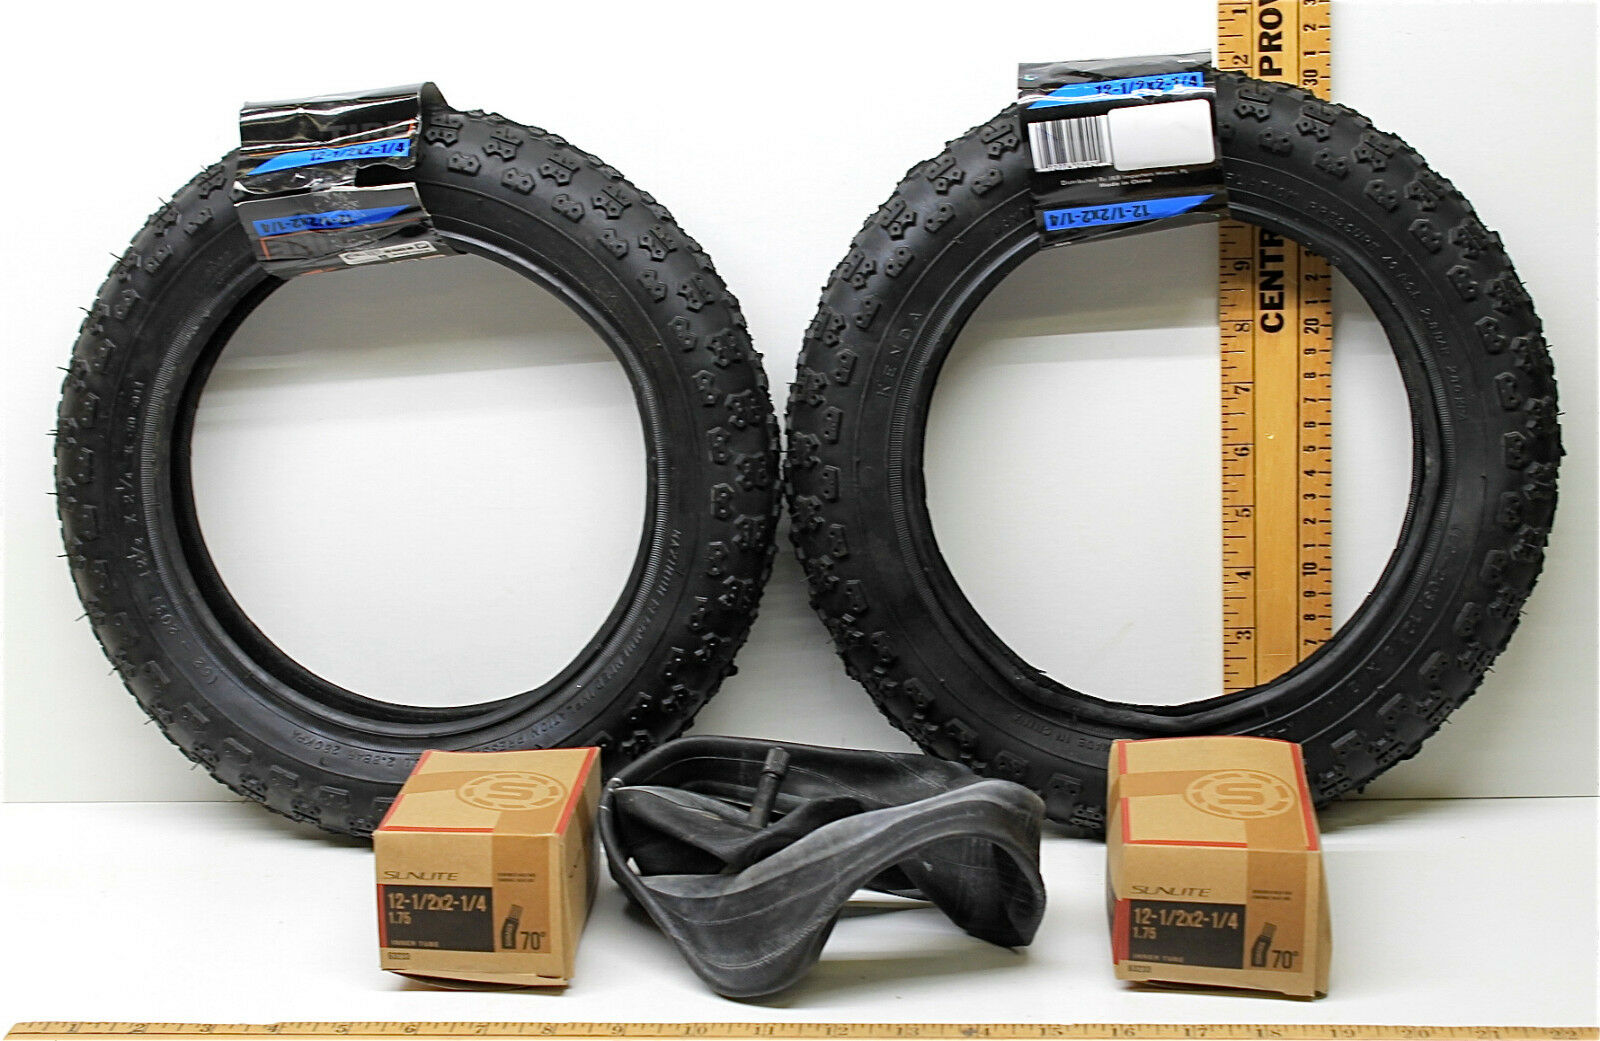 2 Kenda Kids BMX Bike Scooter Tires K-50-037  12-1 2 x 2-1 4 40 PSI + Inner Tubes  best quality best price